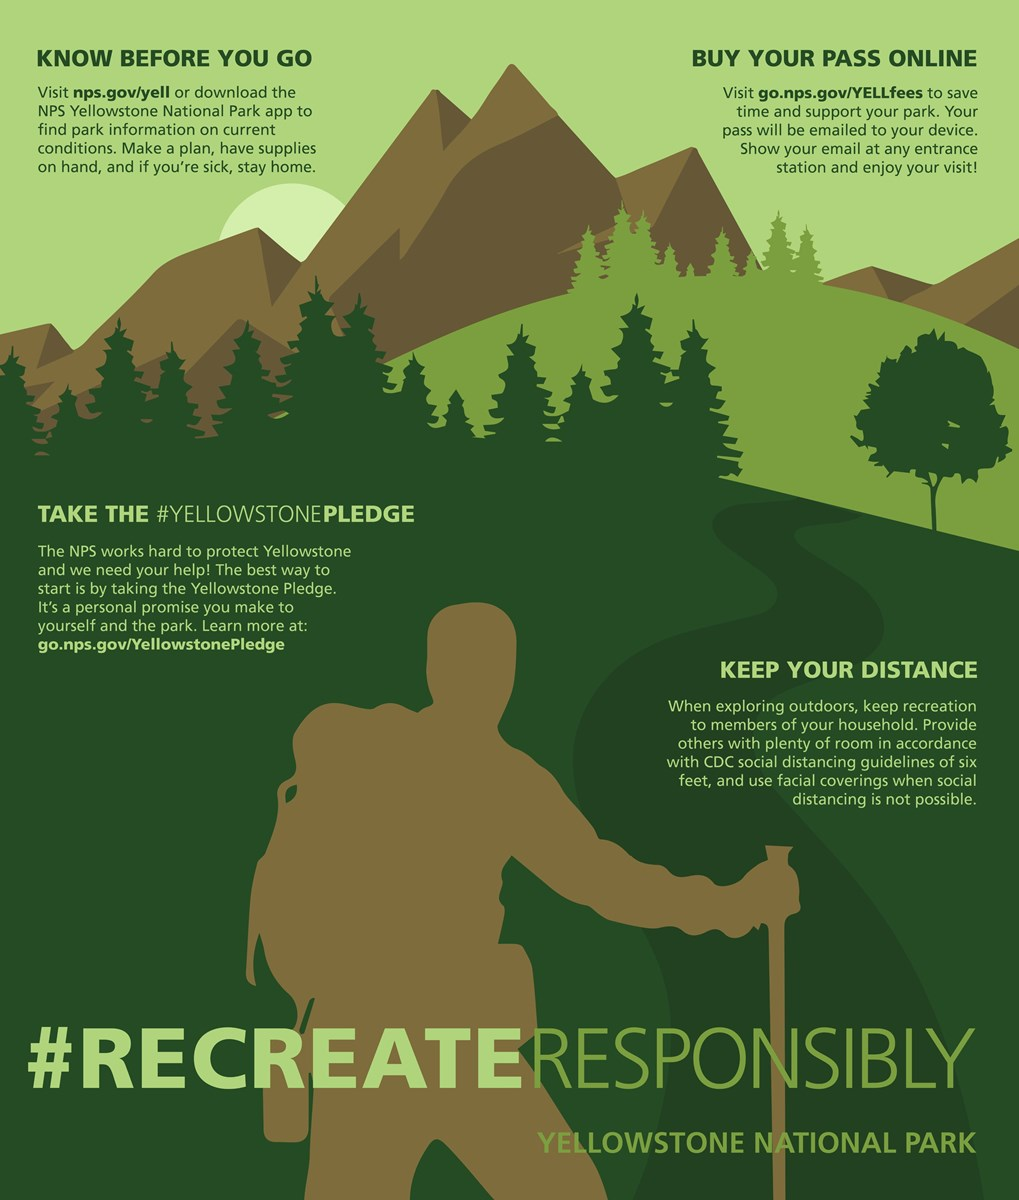 A graphic of a person hiking through the mountains with text about how to recreate responsibly in Yellowstone